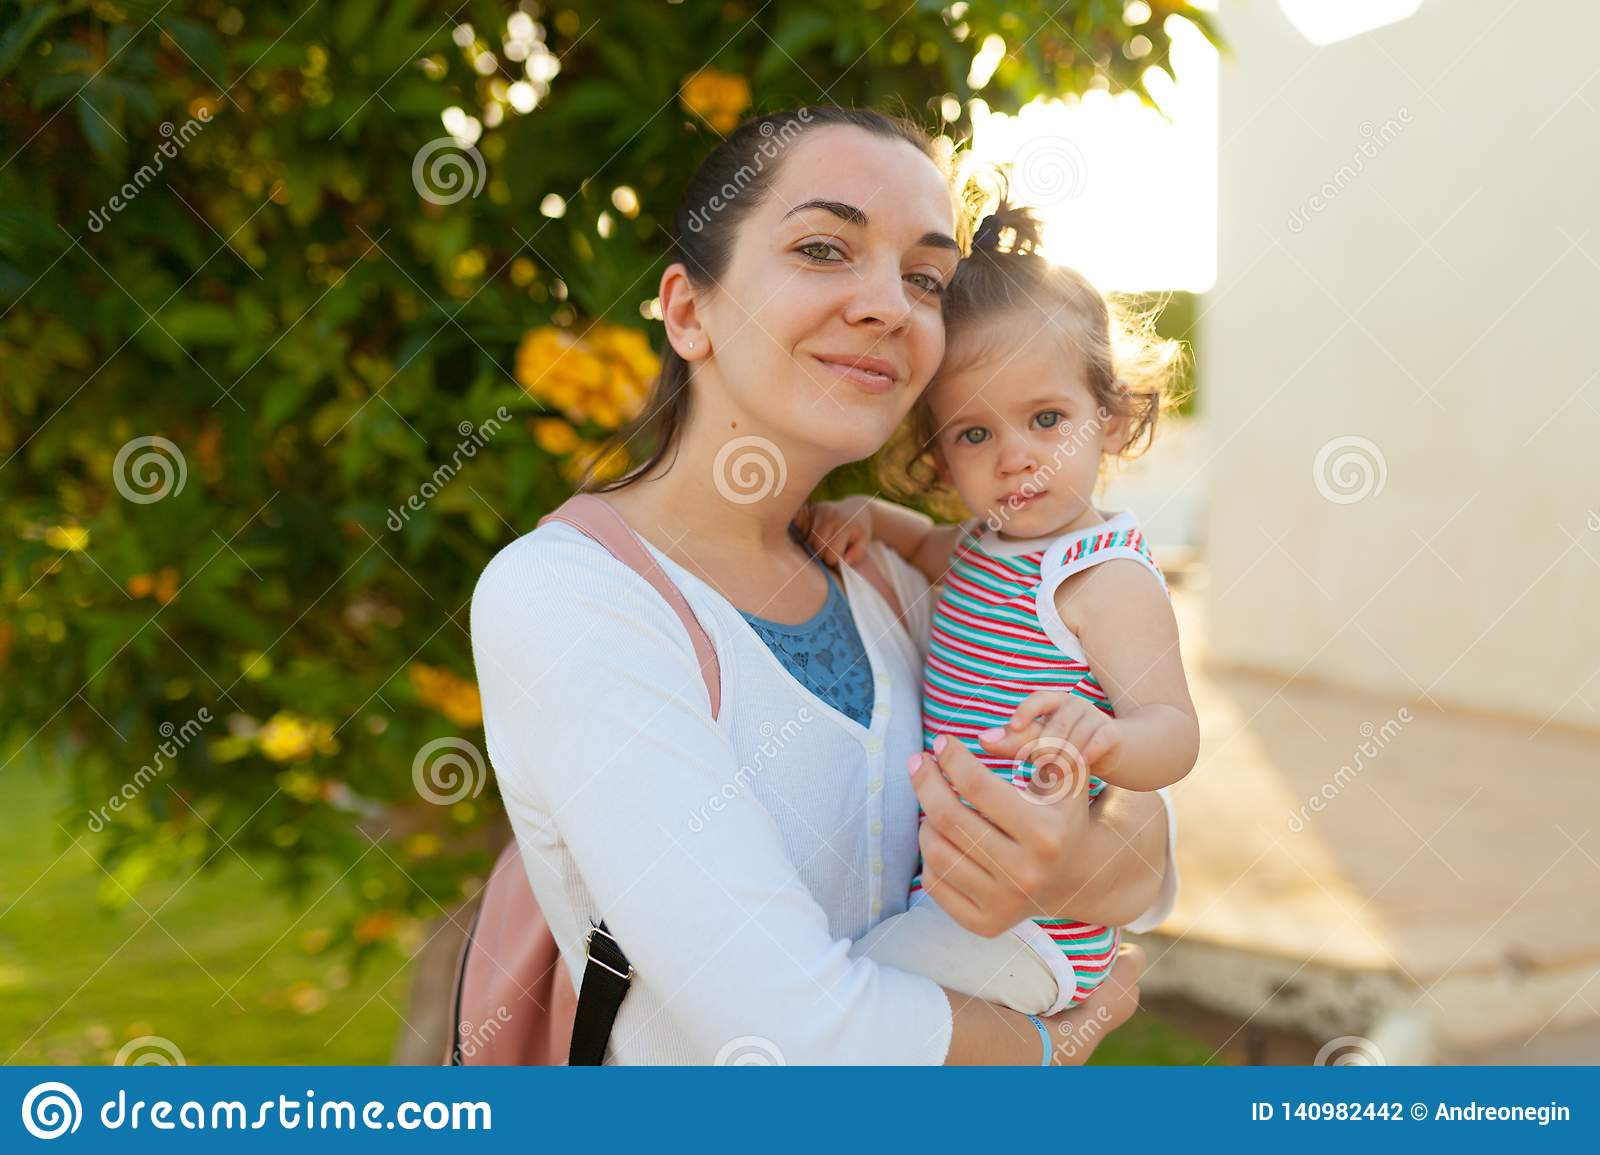 Mother hugging with her little daughter outdoor in nature on sunny day Positive human emotions, feelings, emotions